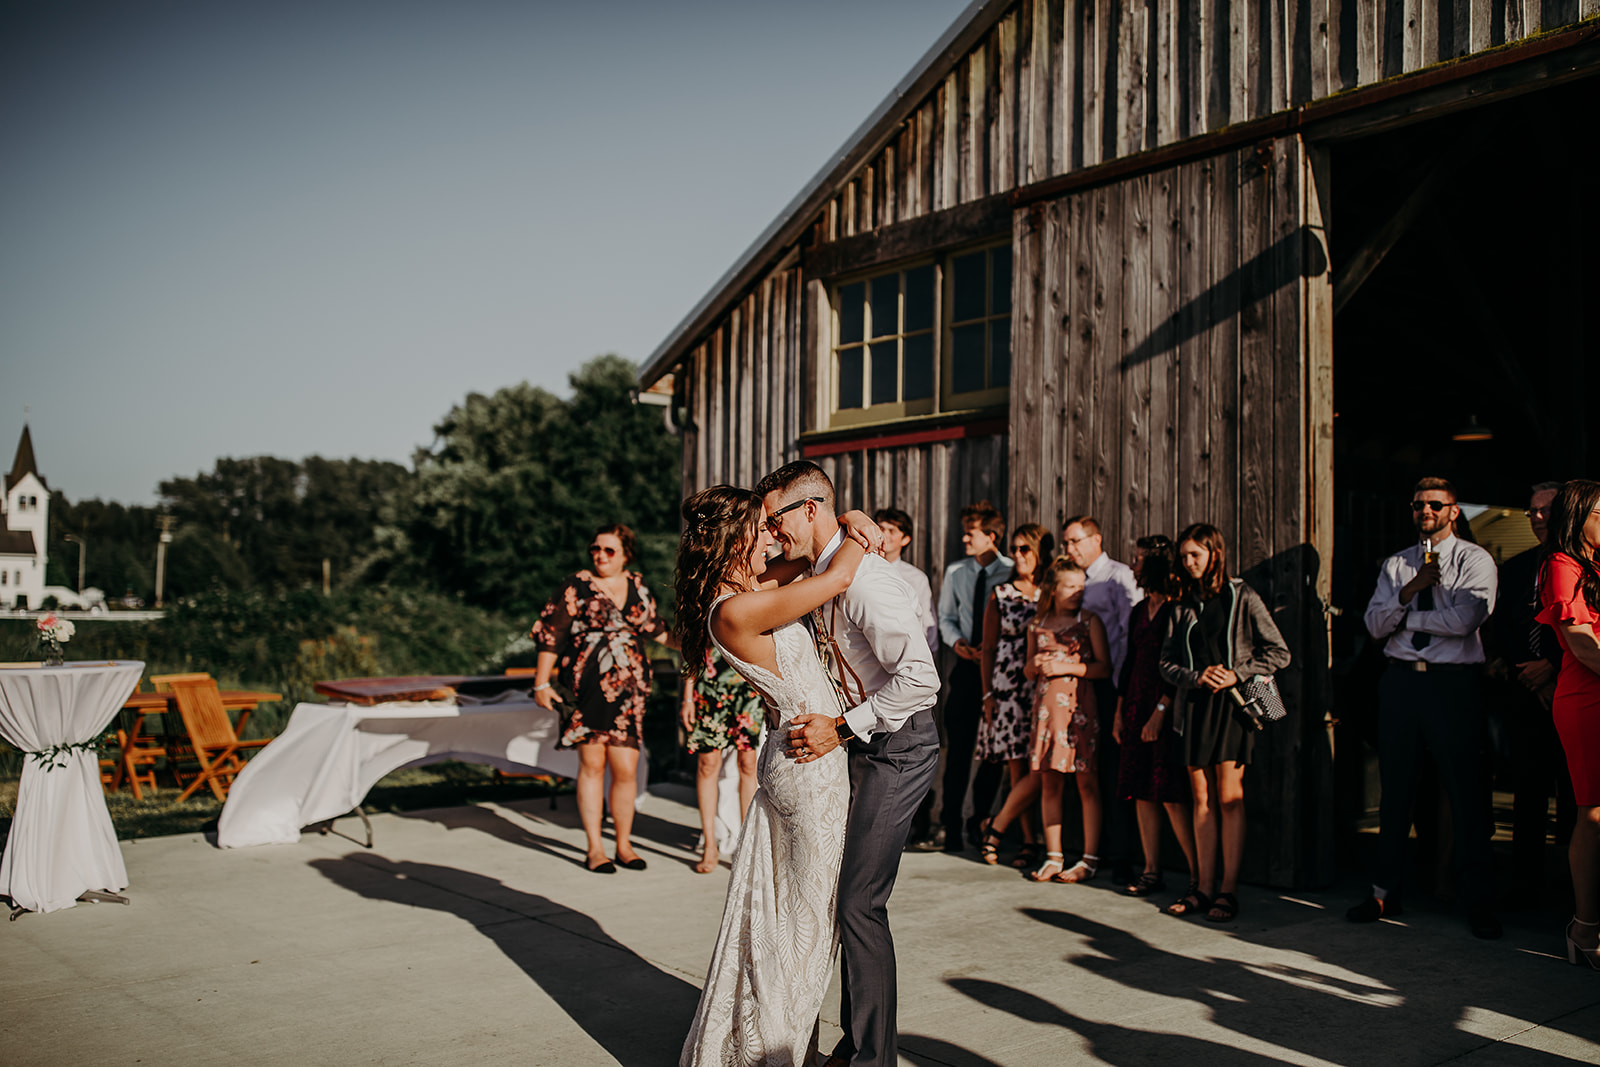 salt-box-barn-wedding-megan-gallagher-photography-4_(183_of_329).jpg